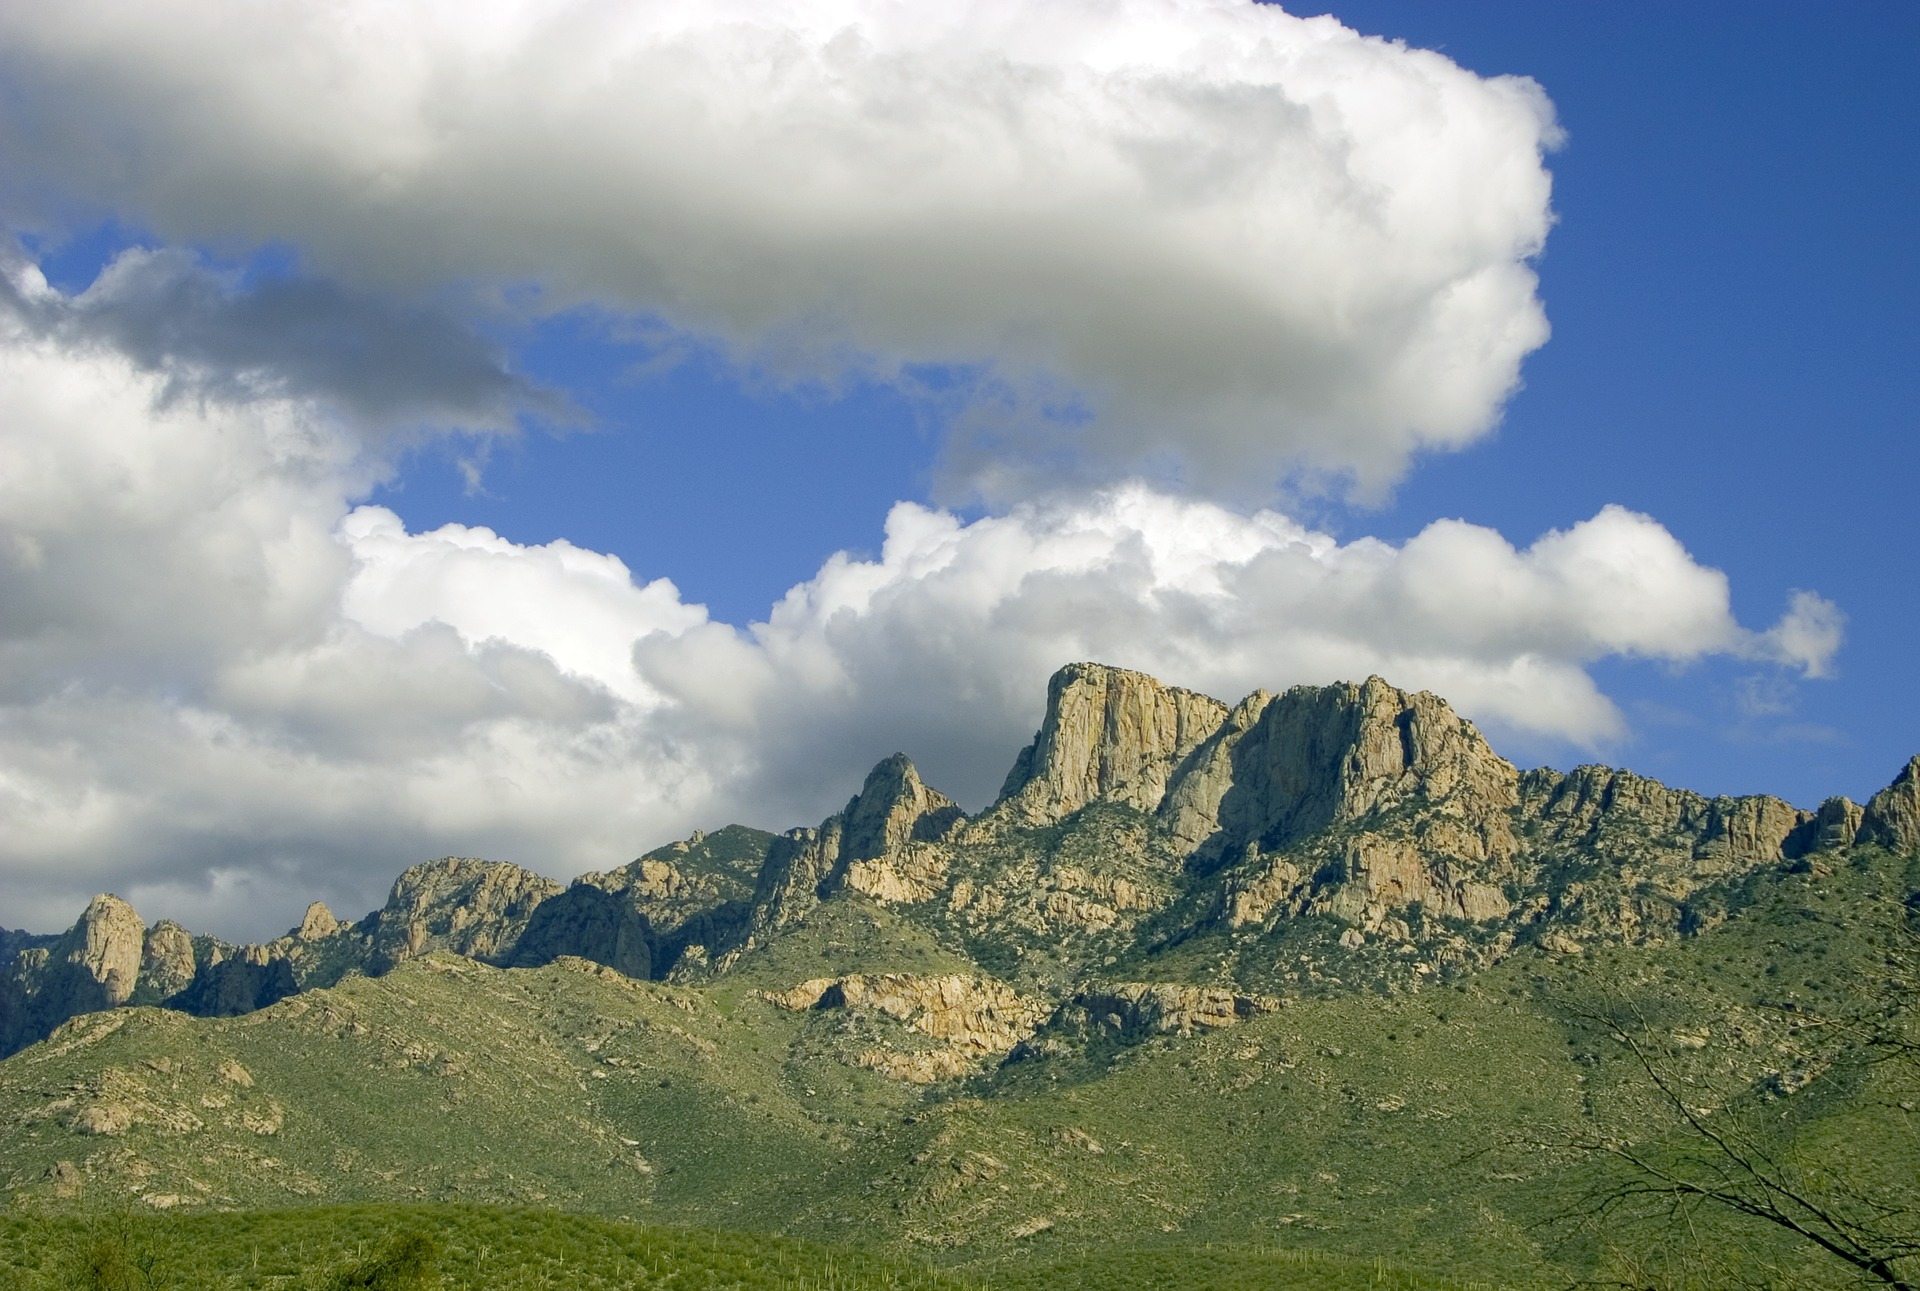 catalina-mountains-tucson-2928436_1920